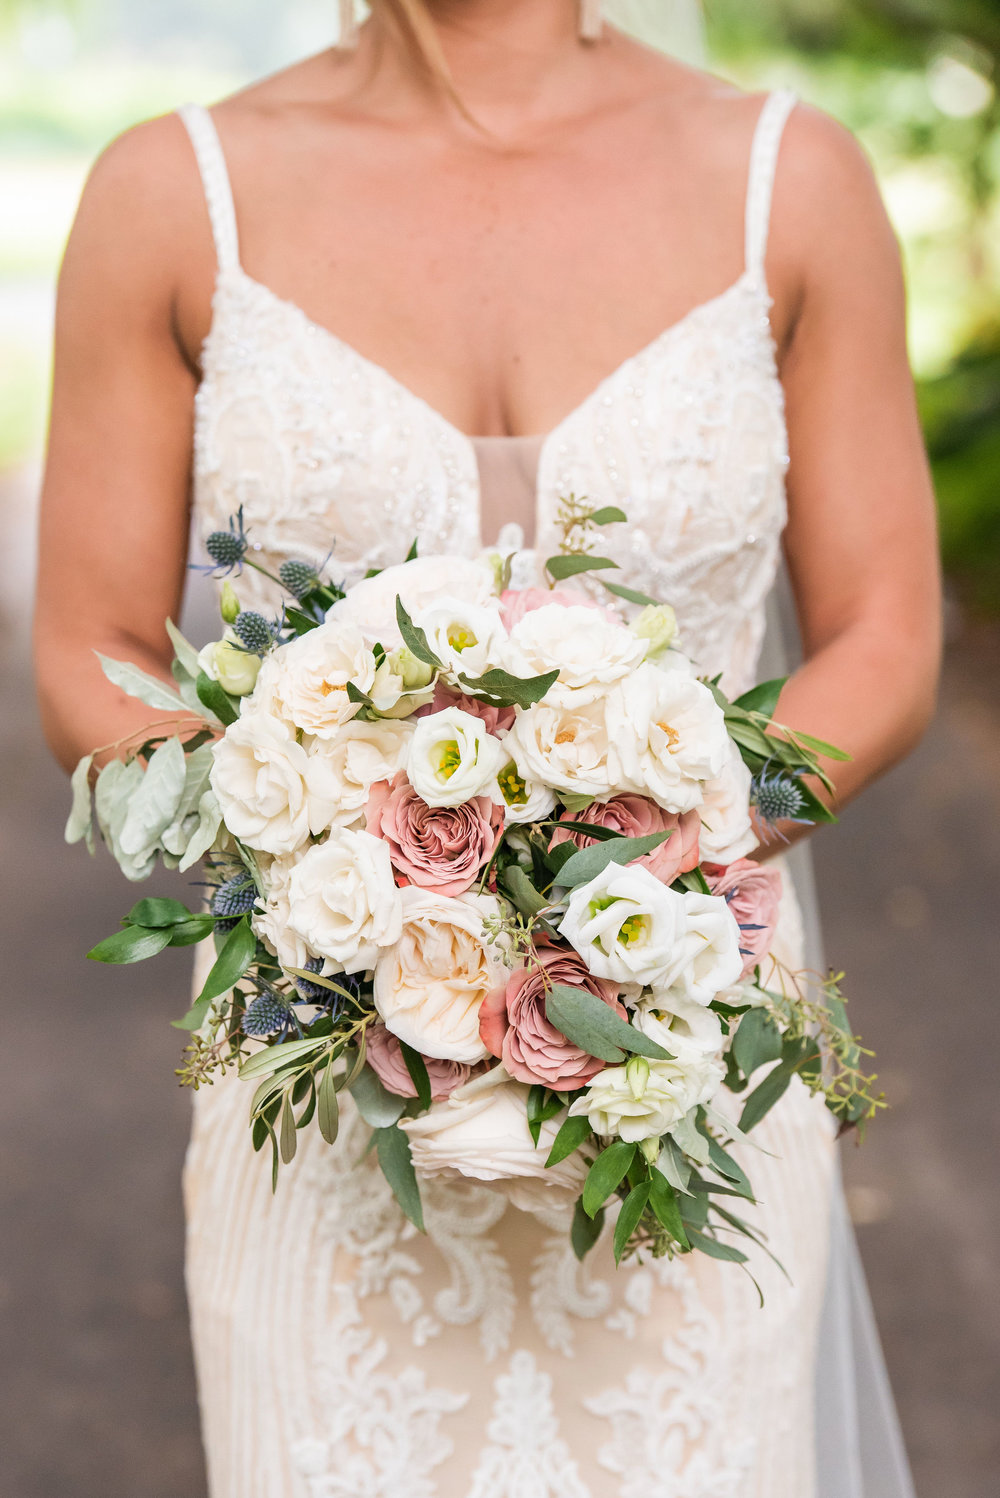 Cape May Willow Creek Winery Wedding, Bridal Bouquet, Flowers, White and Blush Bouquet, Serena Star Photography